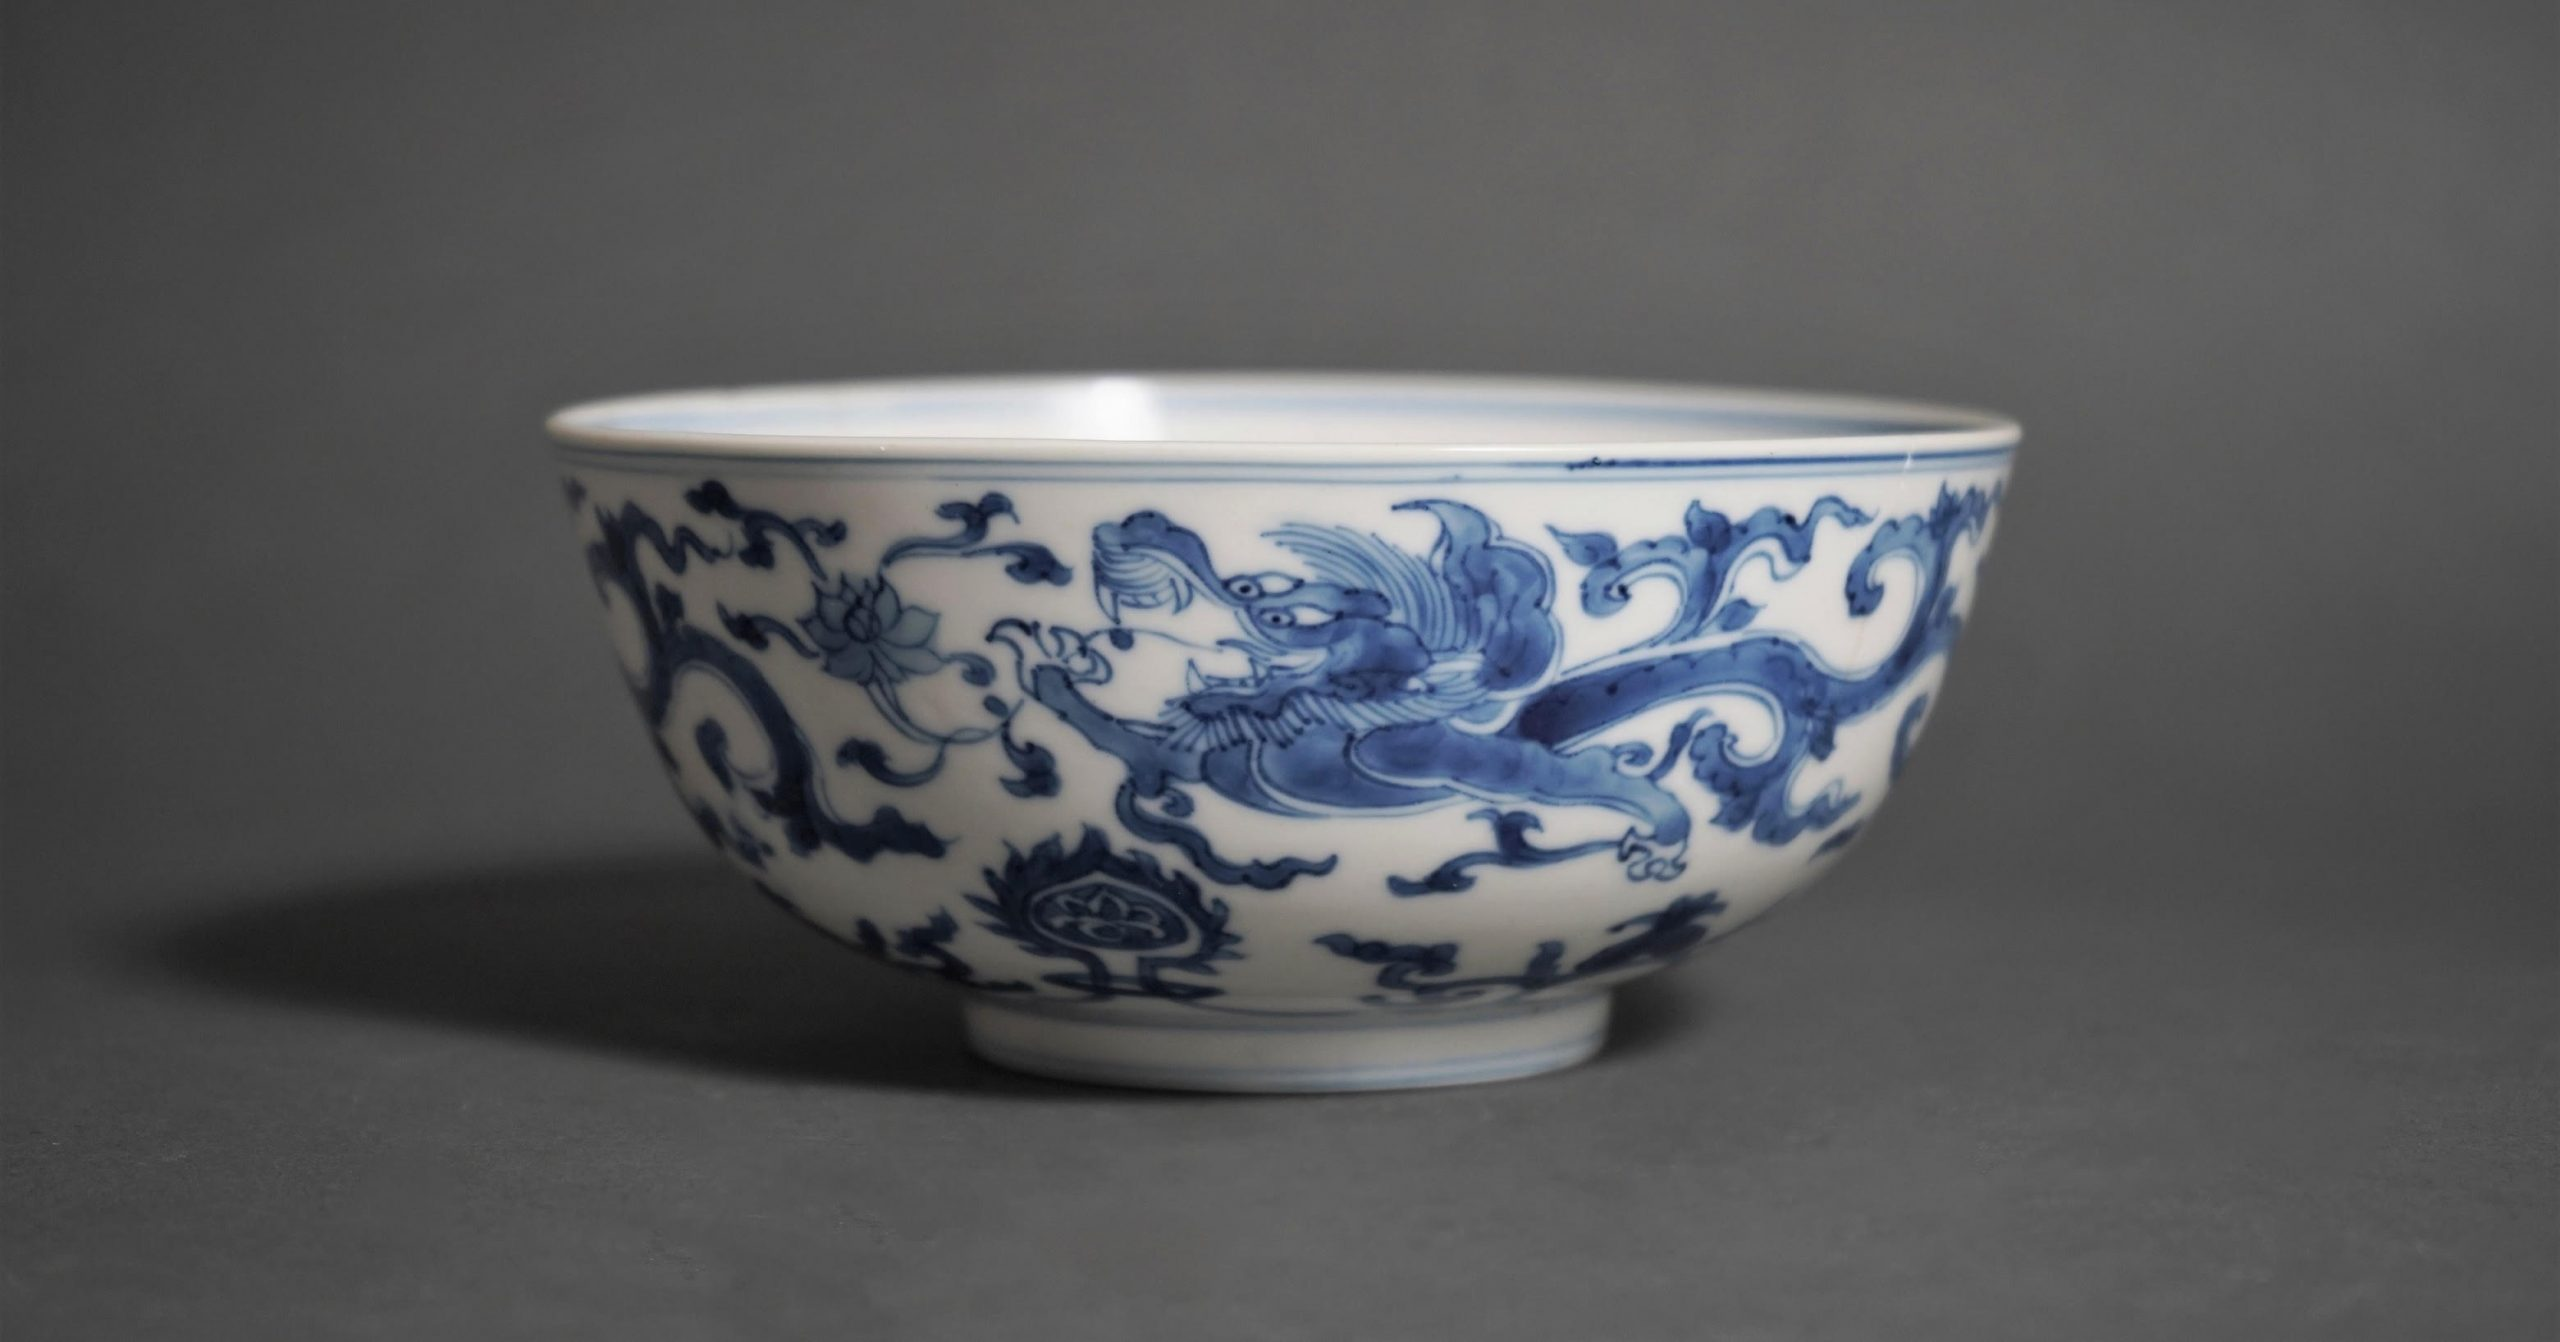 Blue And White 'Kui Dragon' Bowl With Apocryphal Underglaze Blue Chenghua Mark And Of The Kangxi Period (1644-1722)